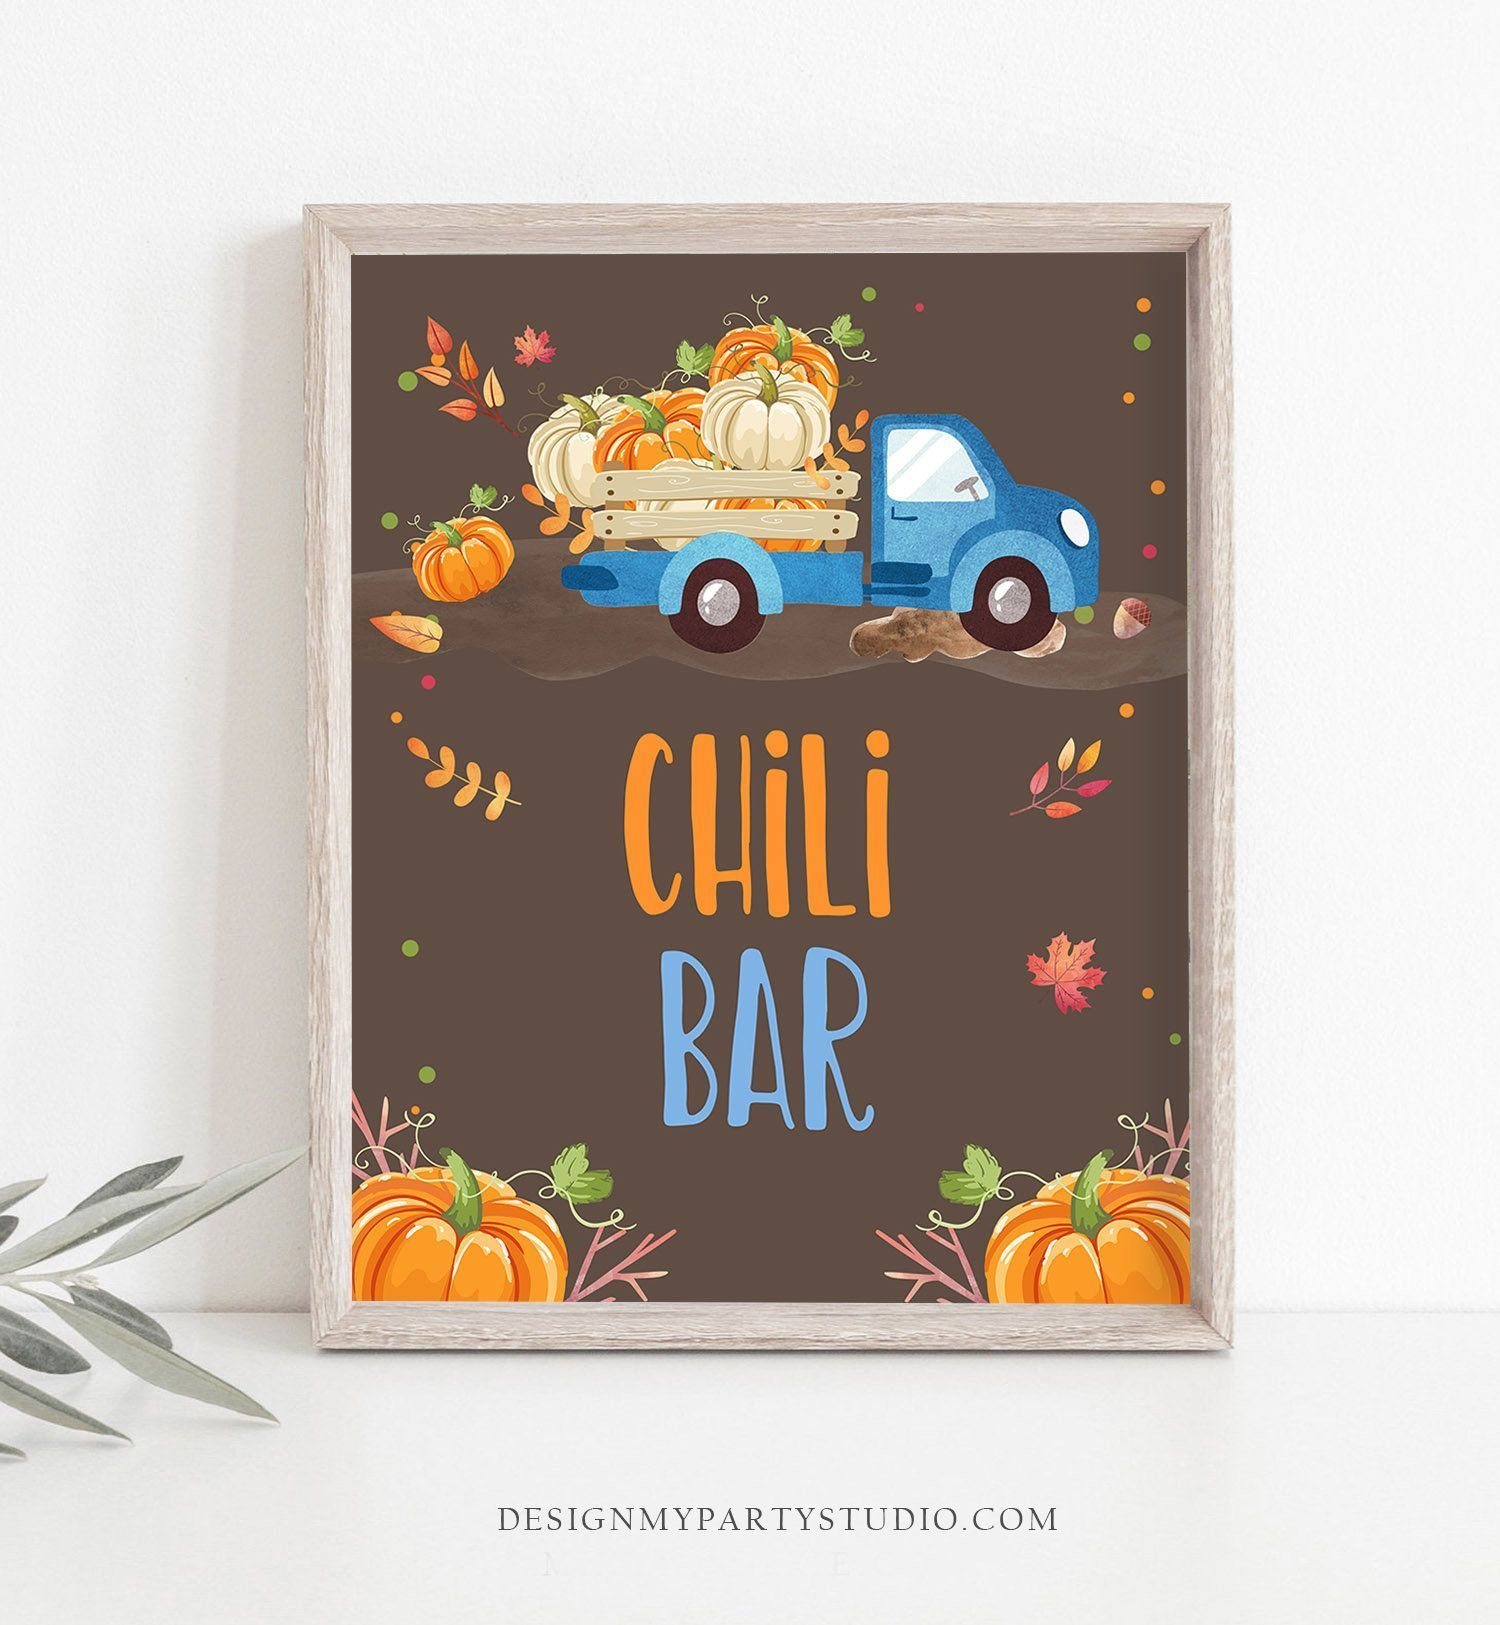 Chili Bar Sign Pumpkin birthday sign Table sign Pumpkin party signs Decor Fall Party Autumn Blue Pumpkin Truck Pumpkin Decor PRINTABLE 0153 #chilibar Chili Bar Sign Pumpkin birthday sign Table sign Pumpkin party signs Decor Fall Party Autumn Blue Pumpkin Truck Pumpkin Decor PRINTABLE 0153 #chilibar